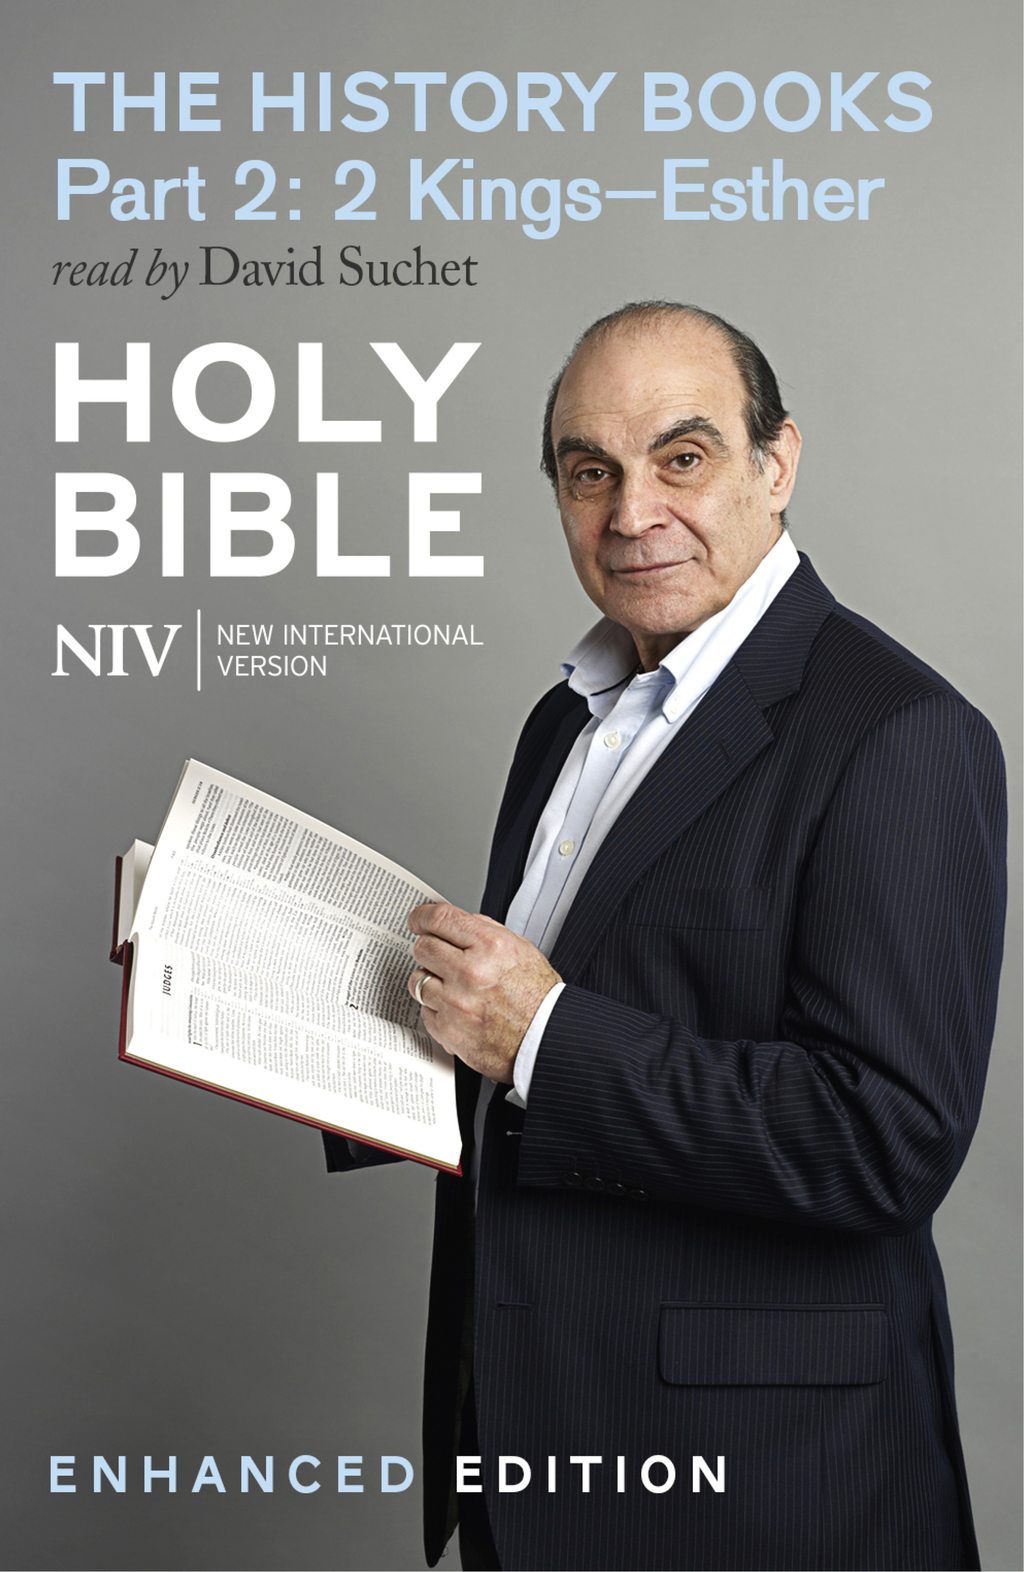 NIV Bible: the History Books - Part 2 (Enhanced Edition) 2 Kings?Esther (read by David Suchet) Enhanced Edition